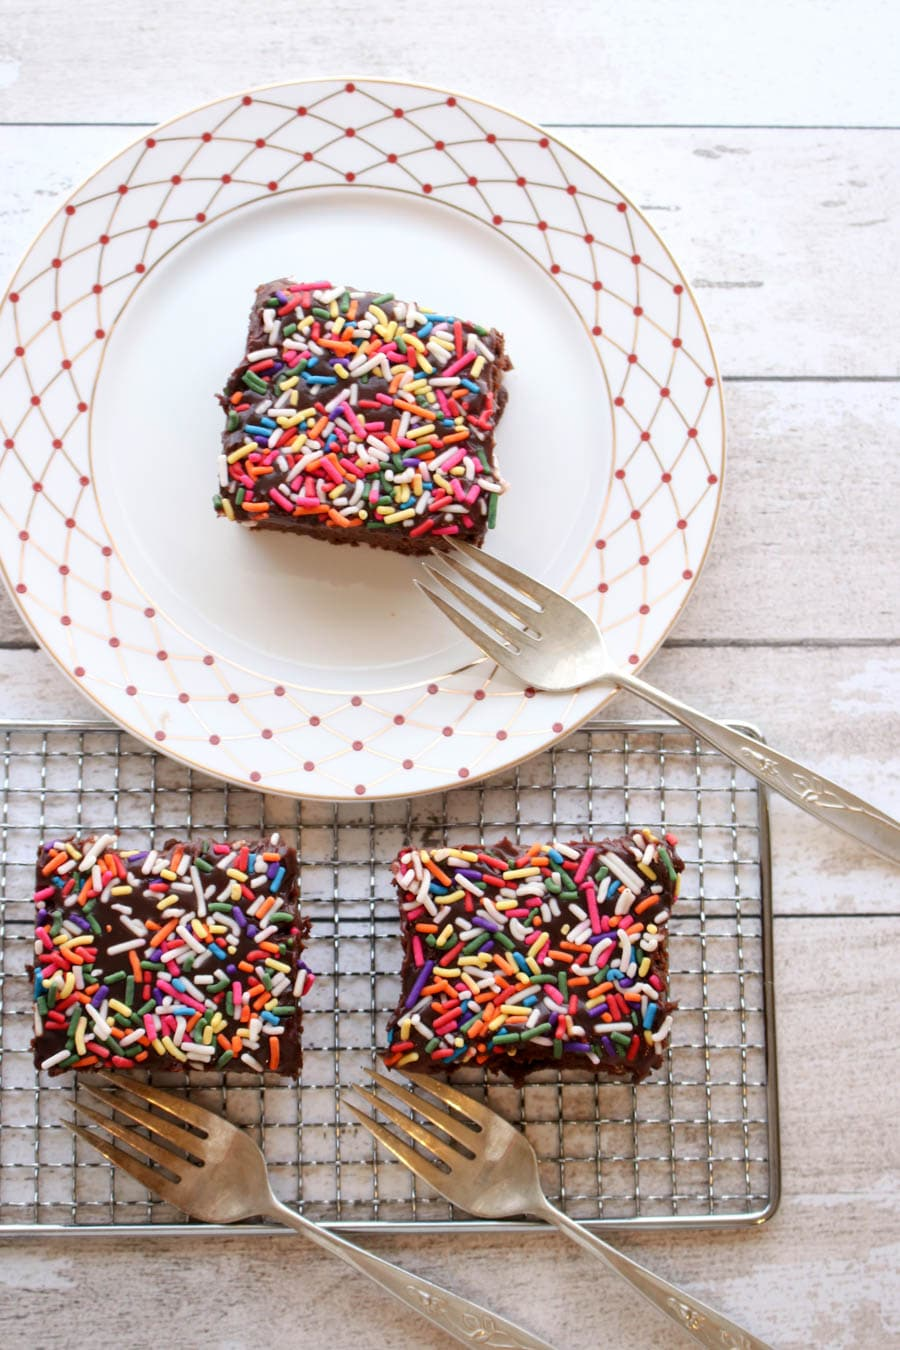 three slices of chocolate cake with sprinkles